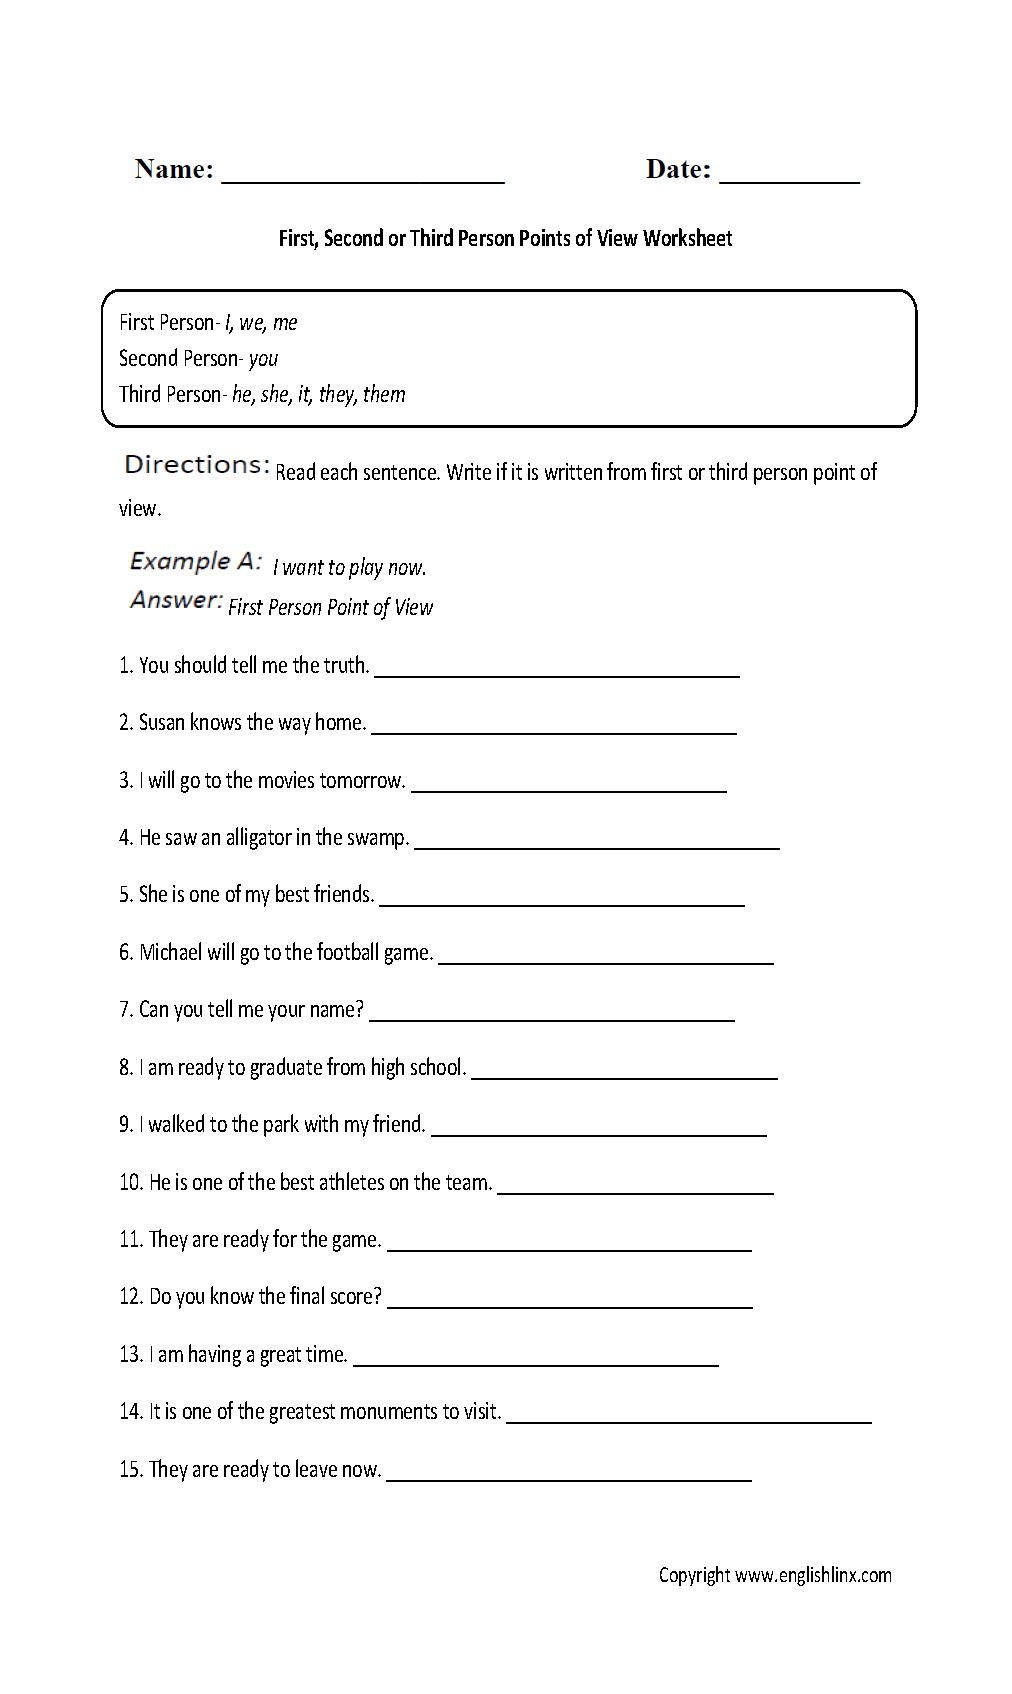 Weirdmailus  Inspiring Englishlinxcom  Point Of View Worksheets With Fascinating Point Of View Worksheet With Extraordinary Areas Of Polygons Worksheet Also Translation Dilation Rotation And Reflection Worksheet In Addition St Day Of School Worksheets And Multiplication Worksheets  As Well As Rational And Irrational Worksheets Additionally Context Clues Worksheet Nd Grade From Englishlinxcom With Weirdmailus  Fascinating Englishlinxcom  Point Of View Worksheets With Extraordinary Point Of View Worksheet And Inspiring Areas Of Polygons Worksheet Also Translation Dilation Rotation And Reflection Worksheet In Addition St Day Of School Worksheets From Englishlinxcom